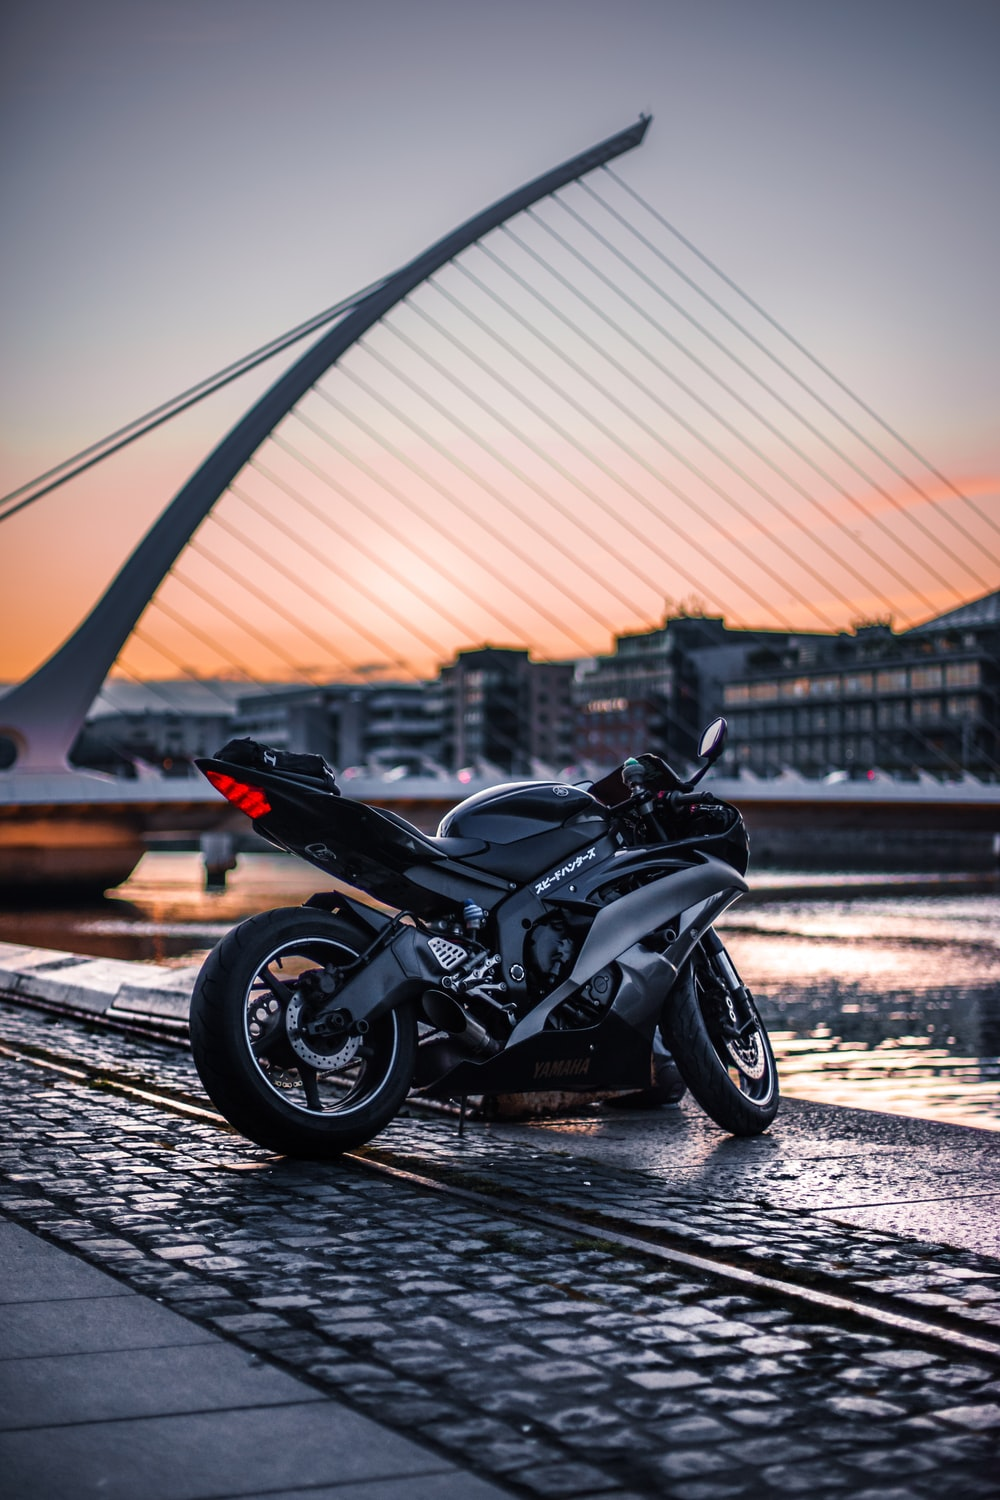 500 Moto Pictures Hd Download Free Images On Unsplash